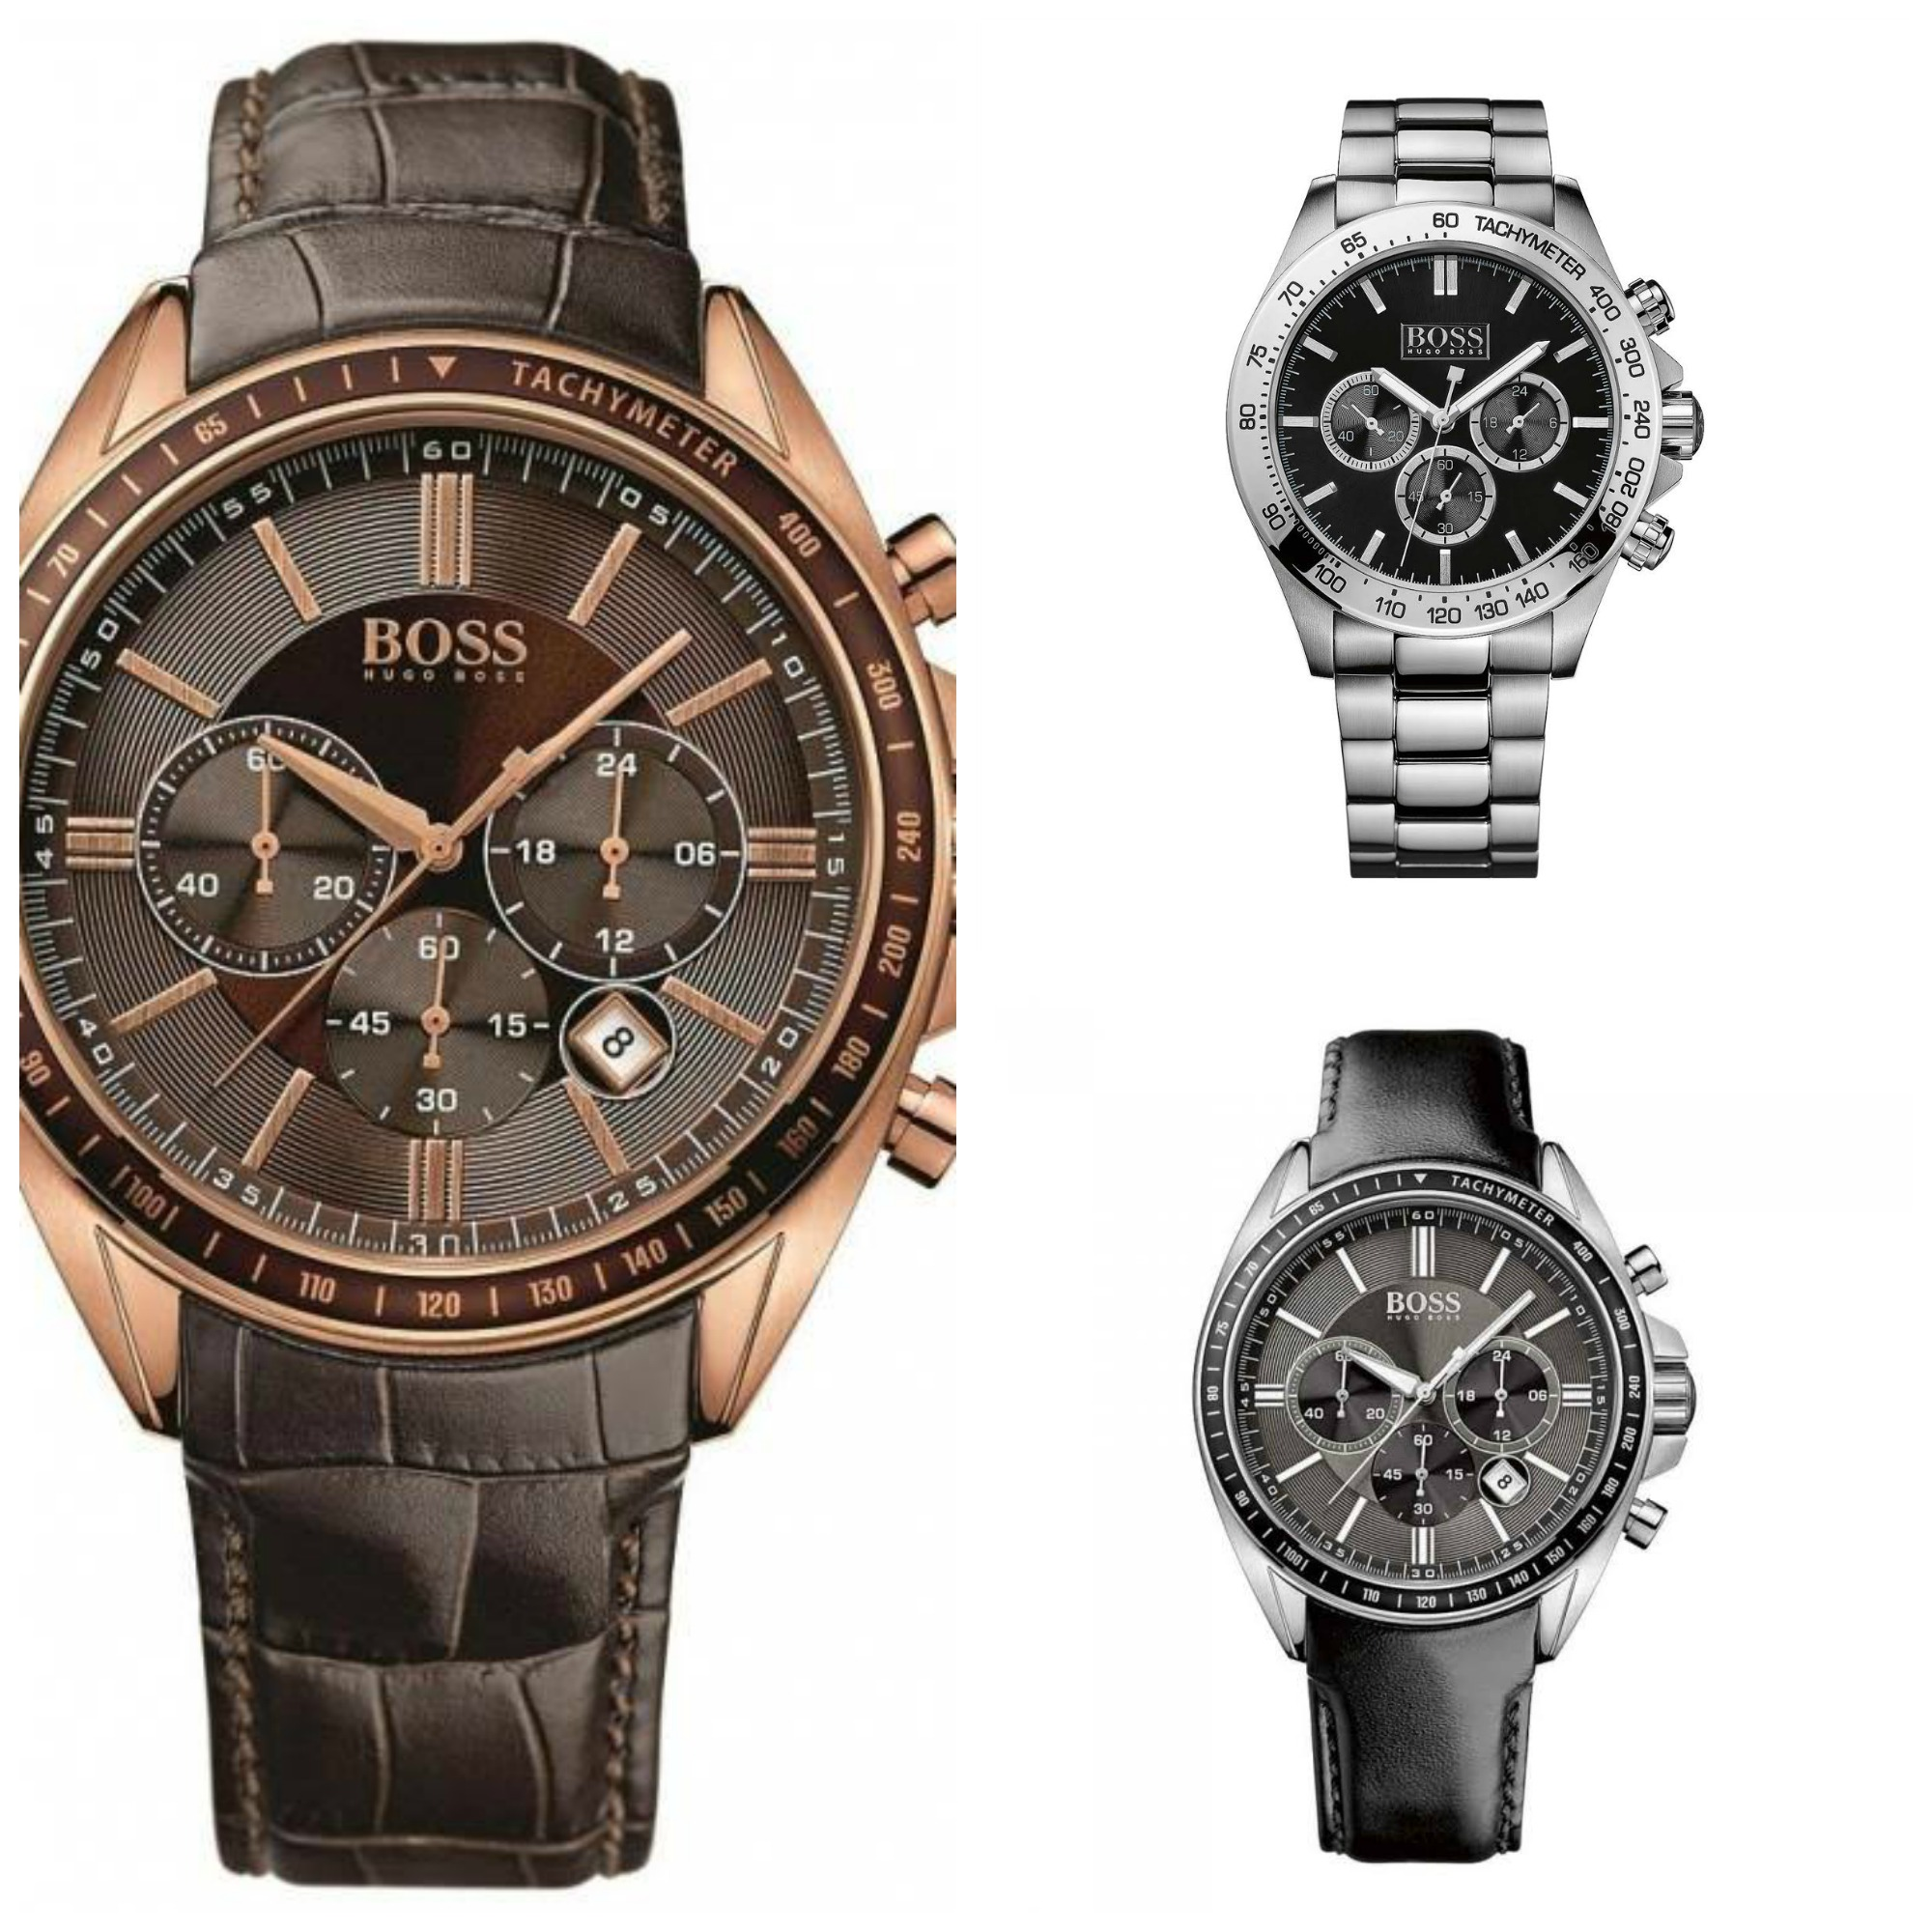 14 Most Popular Hugo Boss Chronograph Men s Watches Best Selling Most  Popular Of 2016 b89b770c3f5a